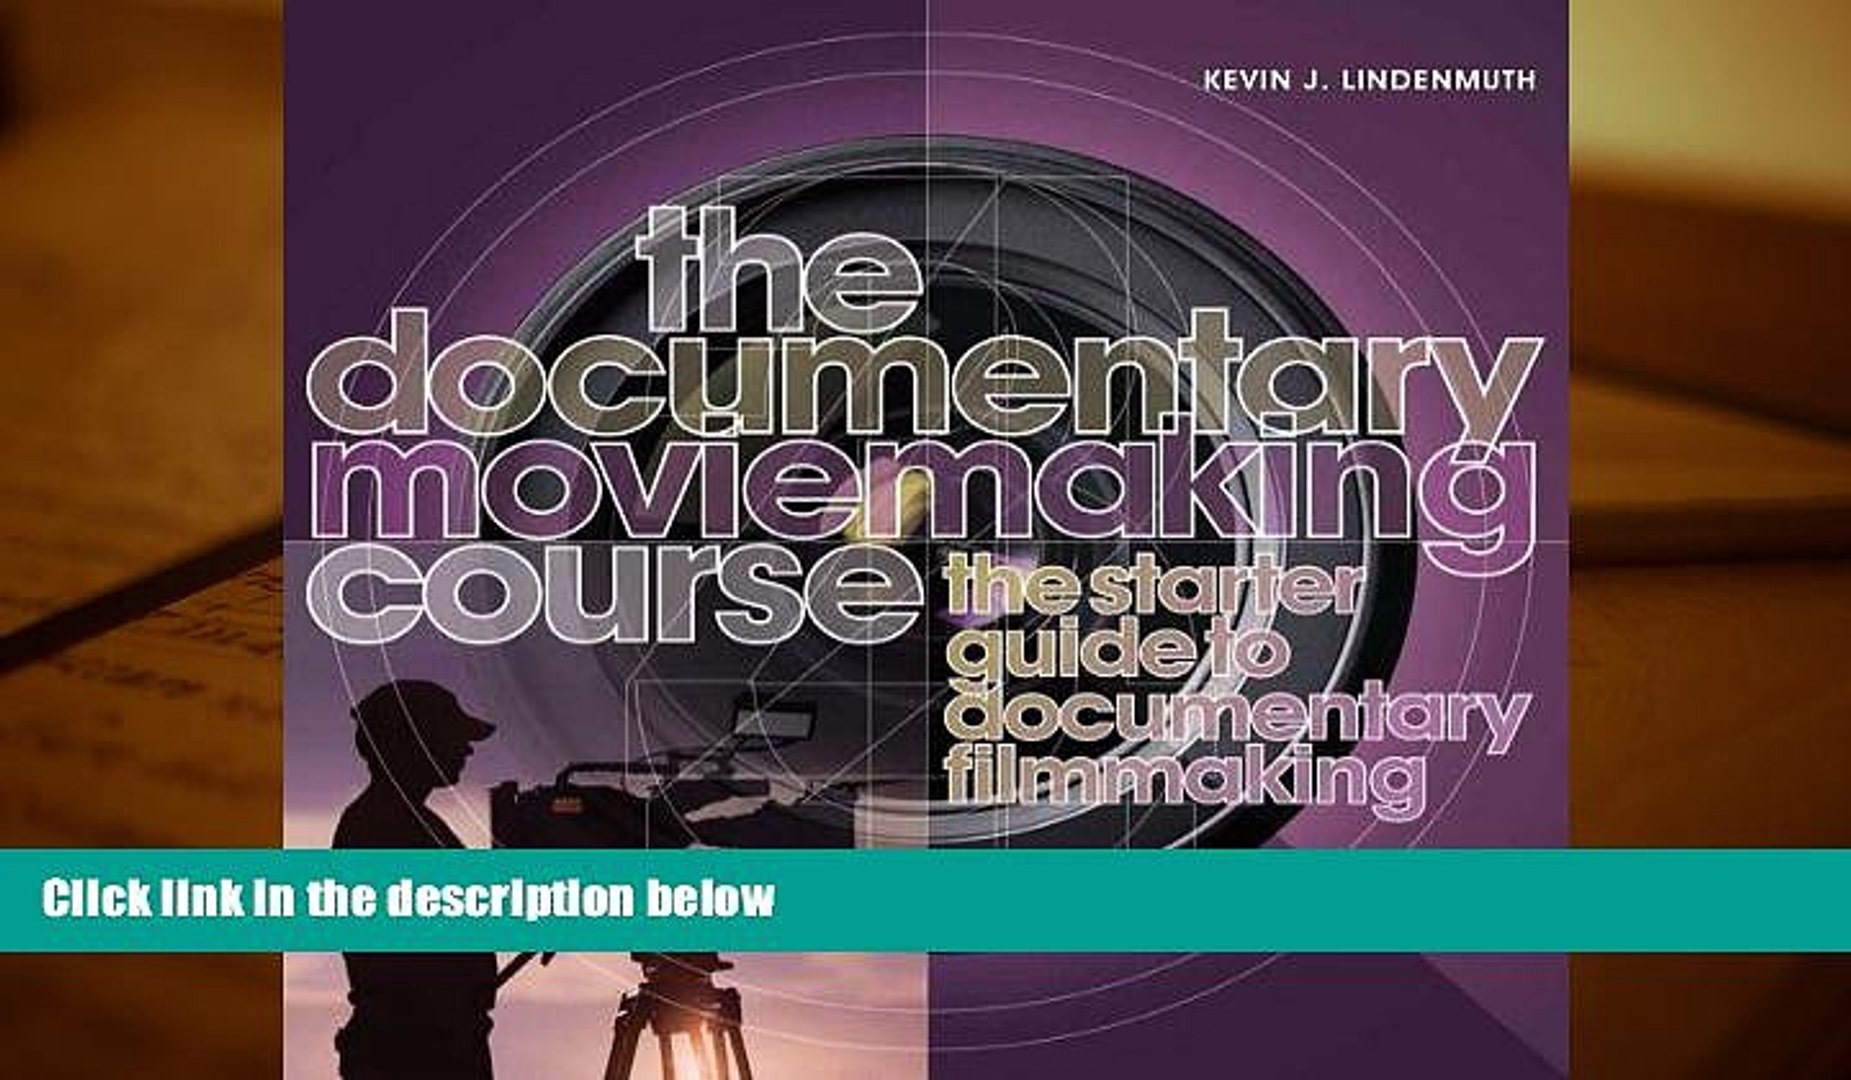 PDF  The Documentary Moviemaking Course: The Starter Guide to Documentary Filmmaking Kevin J.